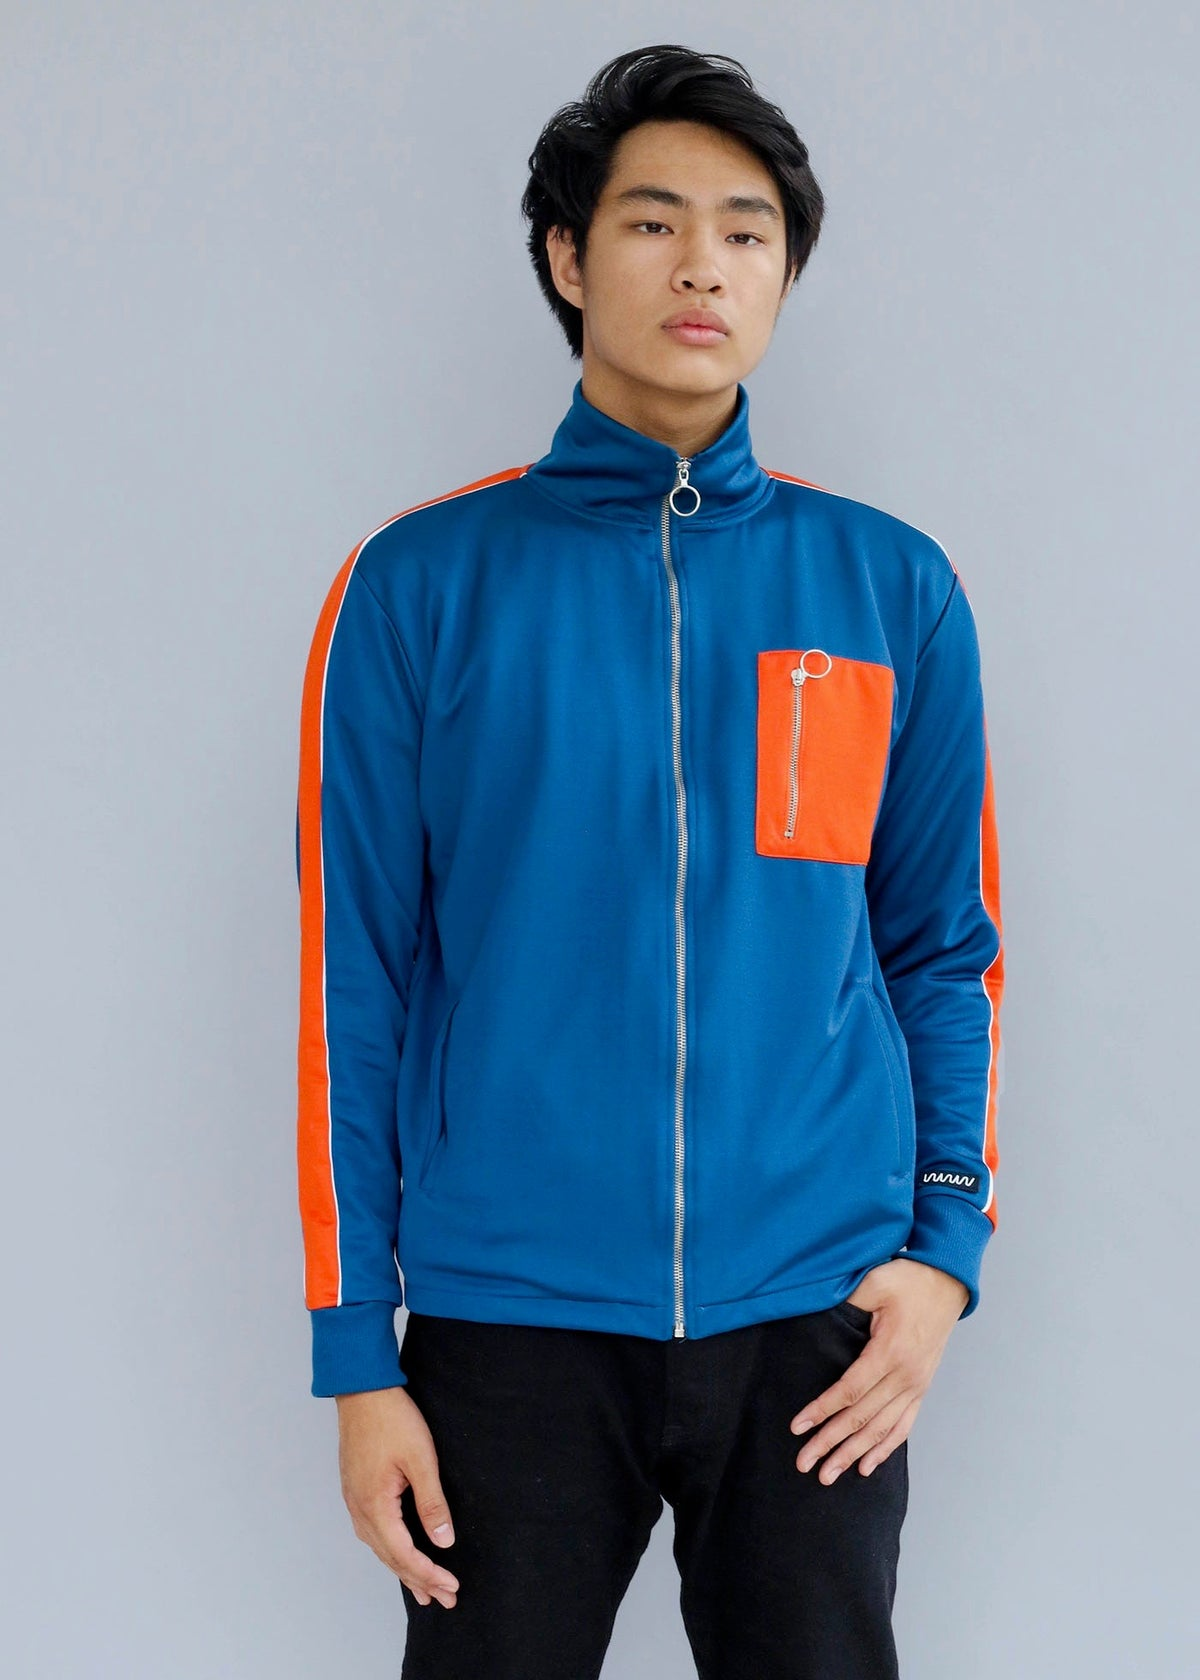 Orange and blue Vertical Tracksuit Jacket featuring a high neckline from What We Wear